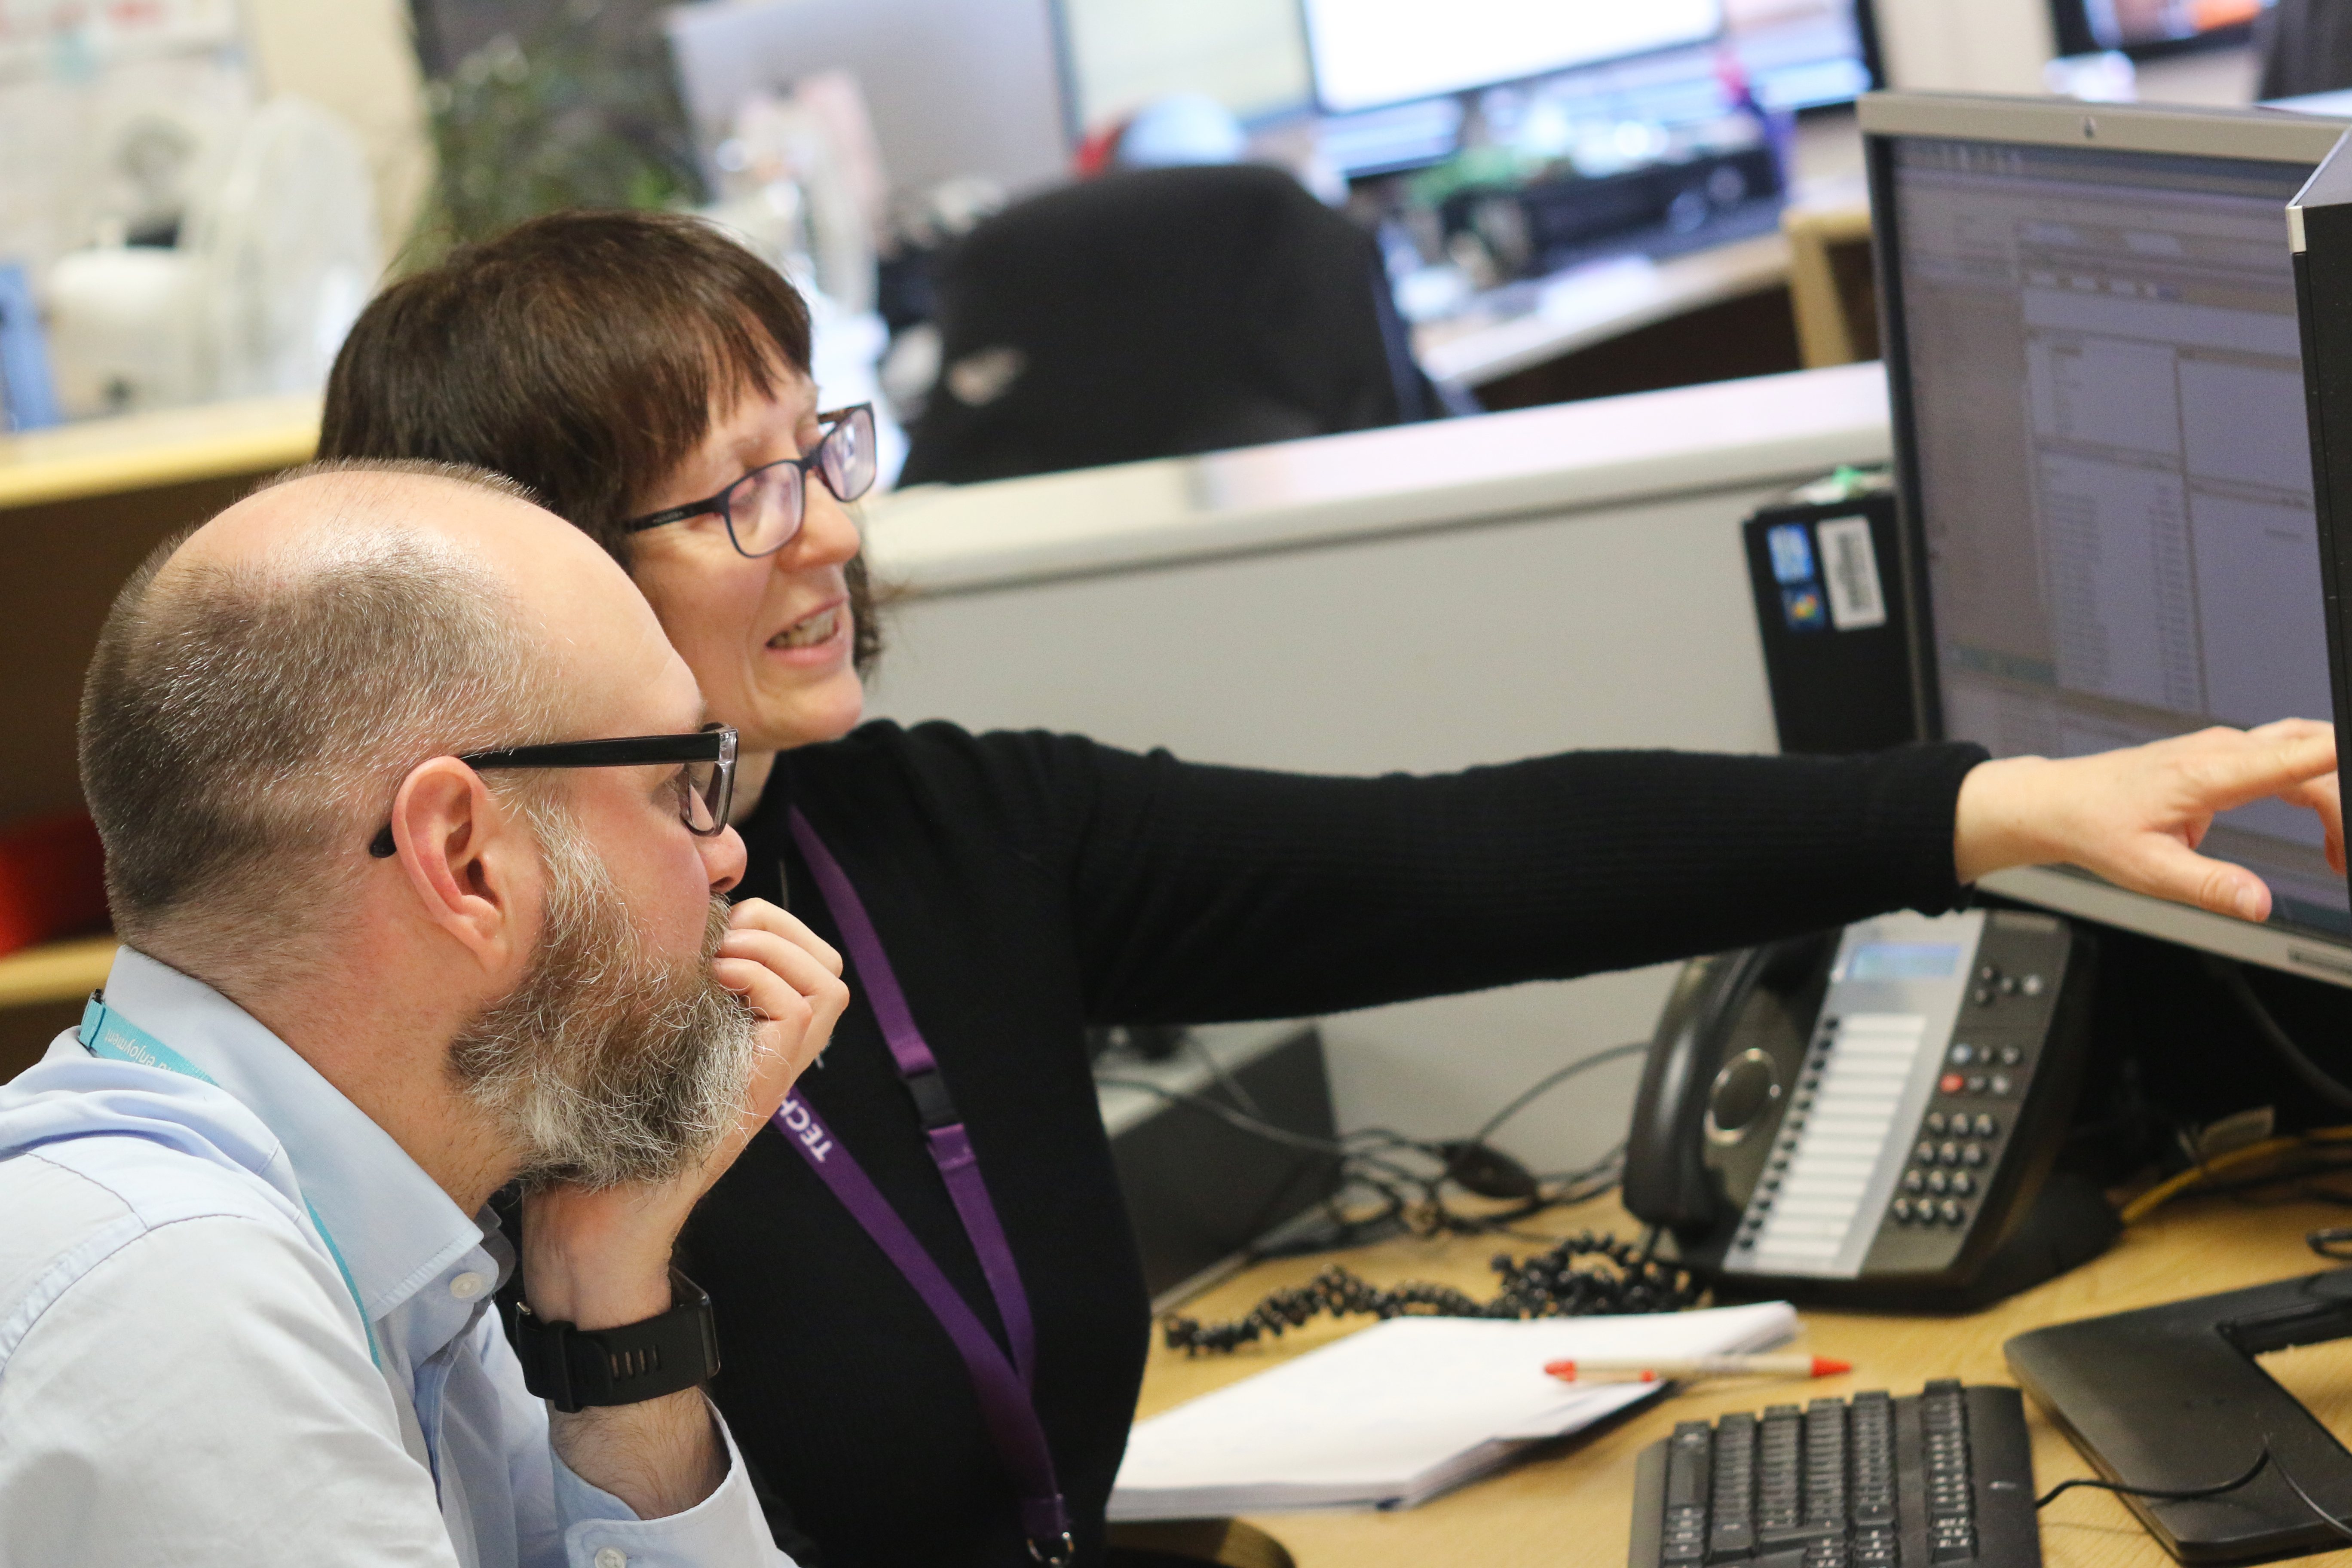 Two Application Support team members at a PC